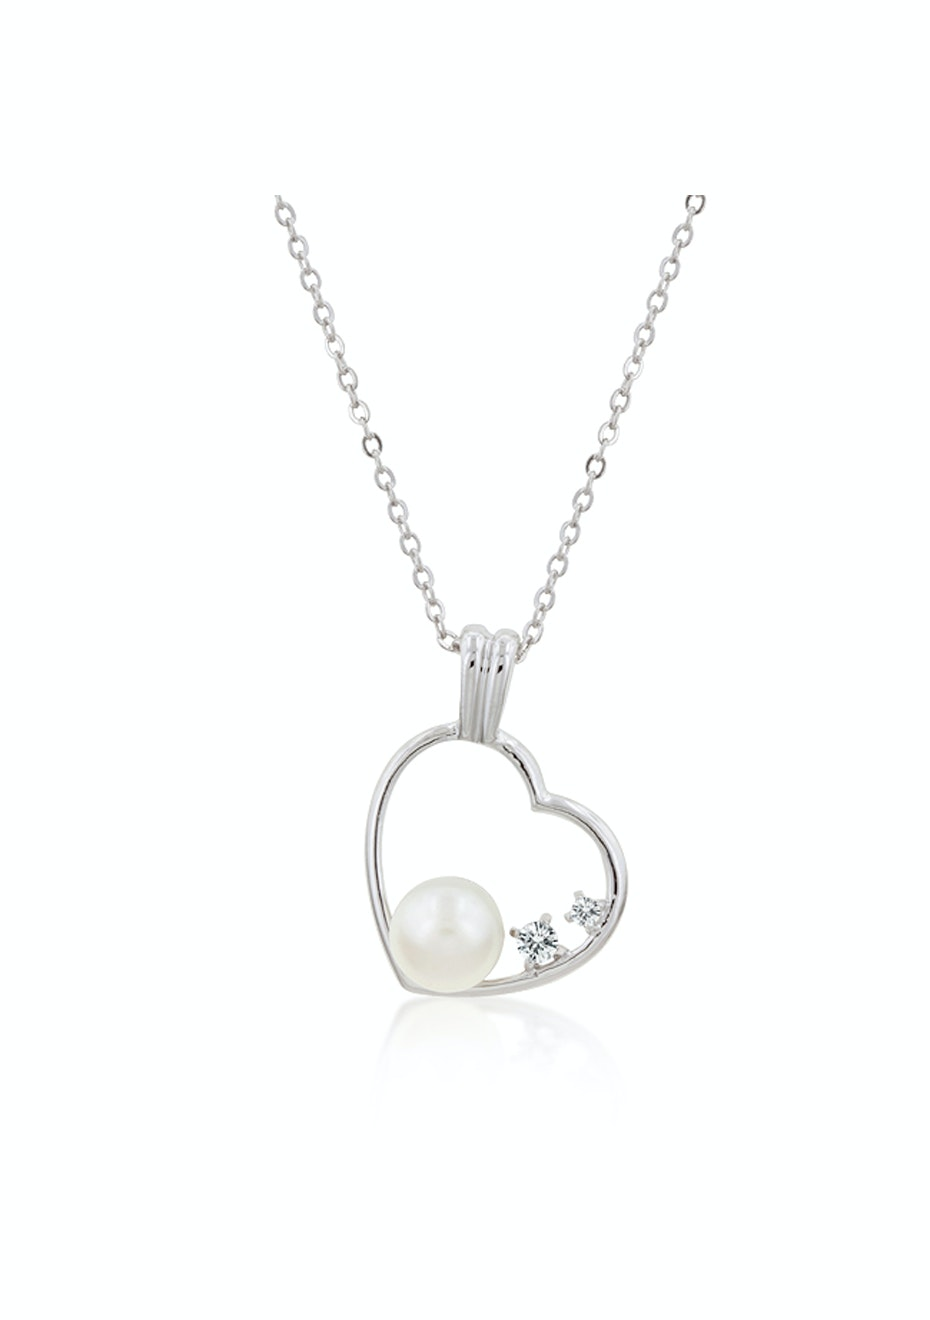 Heart Pend Chain set w CZ and faux pearl